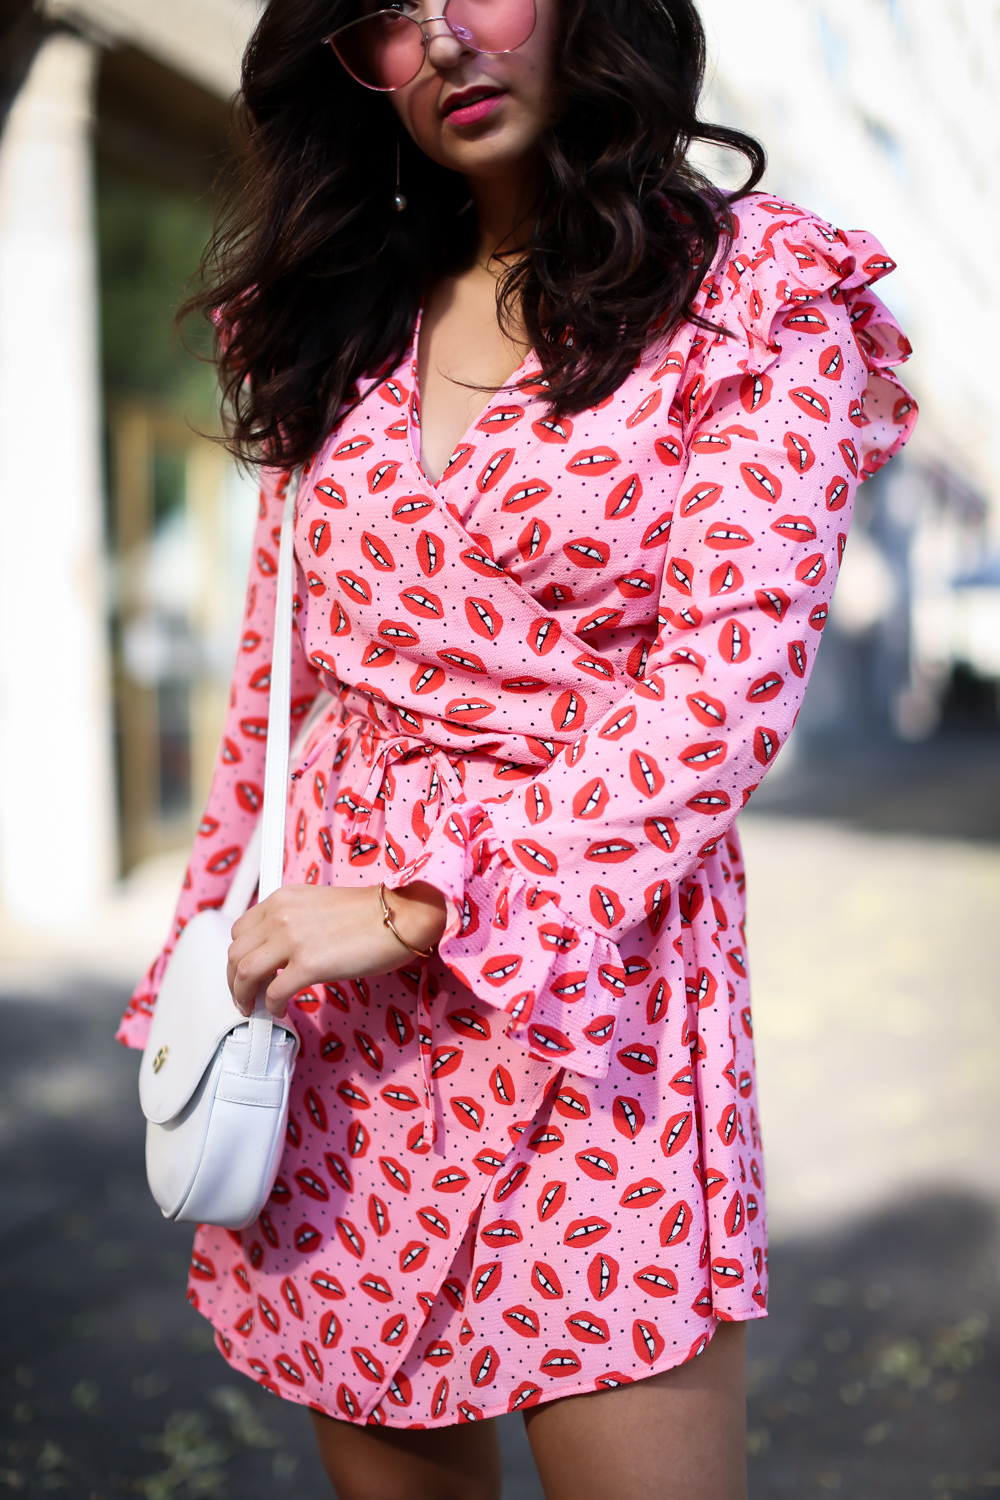 loavies wrap dress pink white scarosso boots trench coat hm white aigner bag preppy party summer look streetstyle fashion modeblog berlin blog samieze